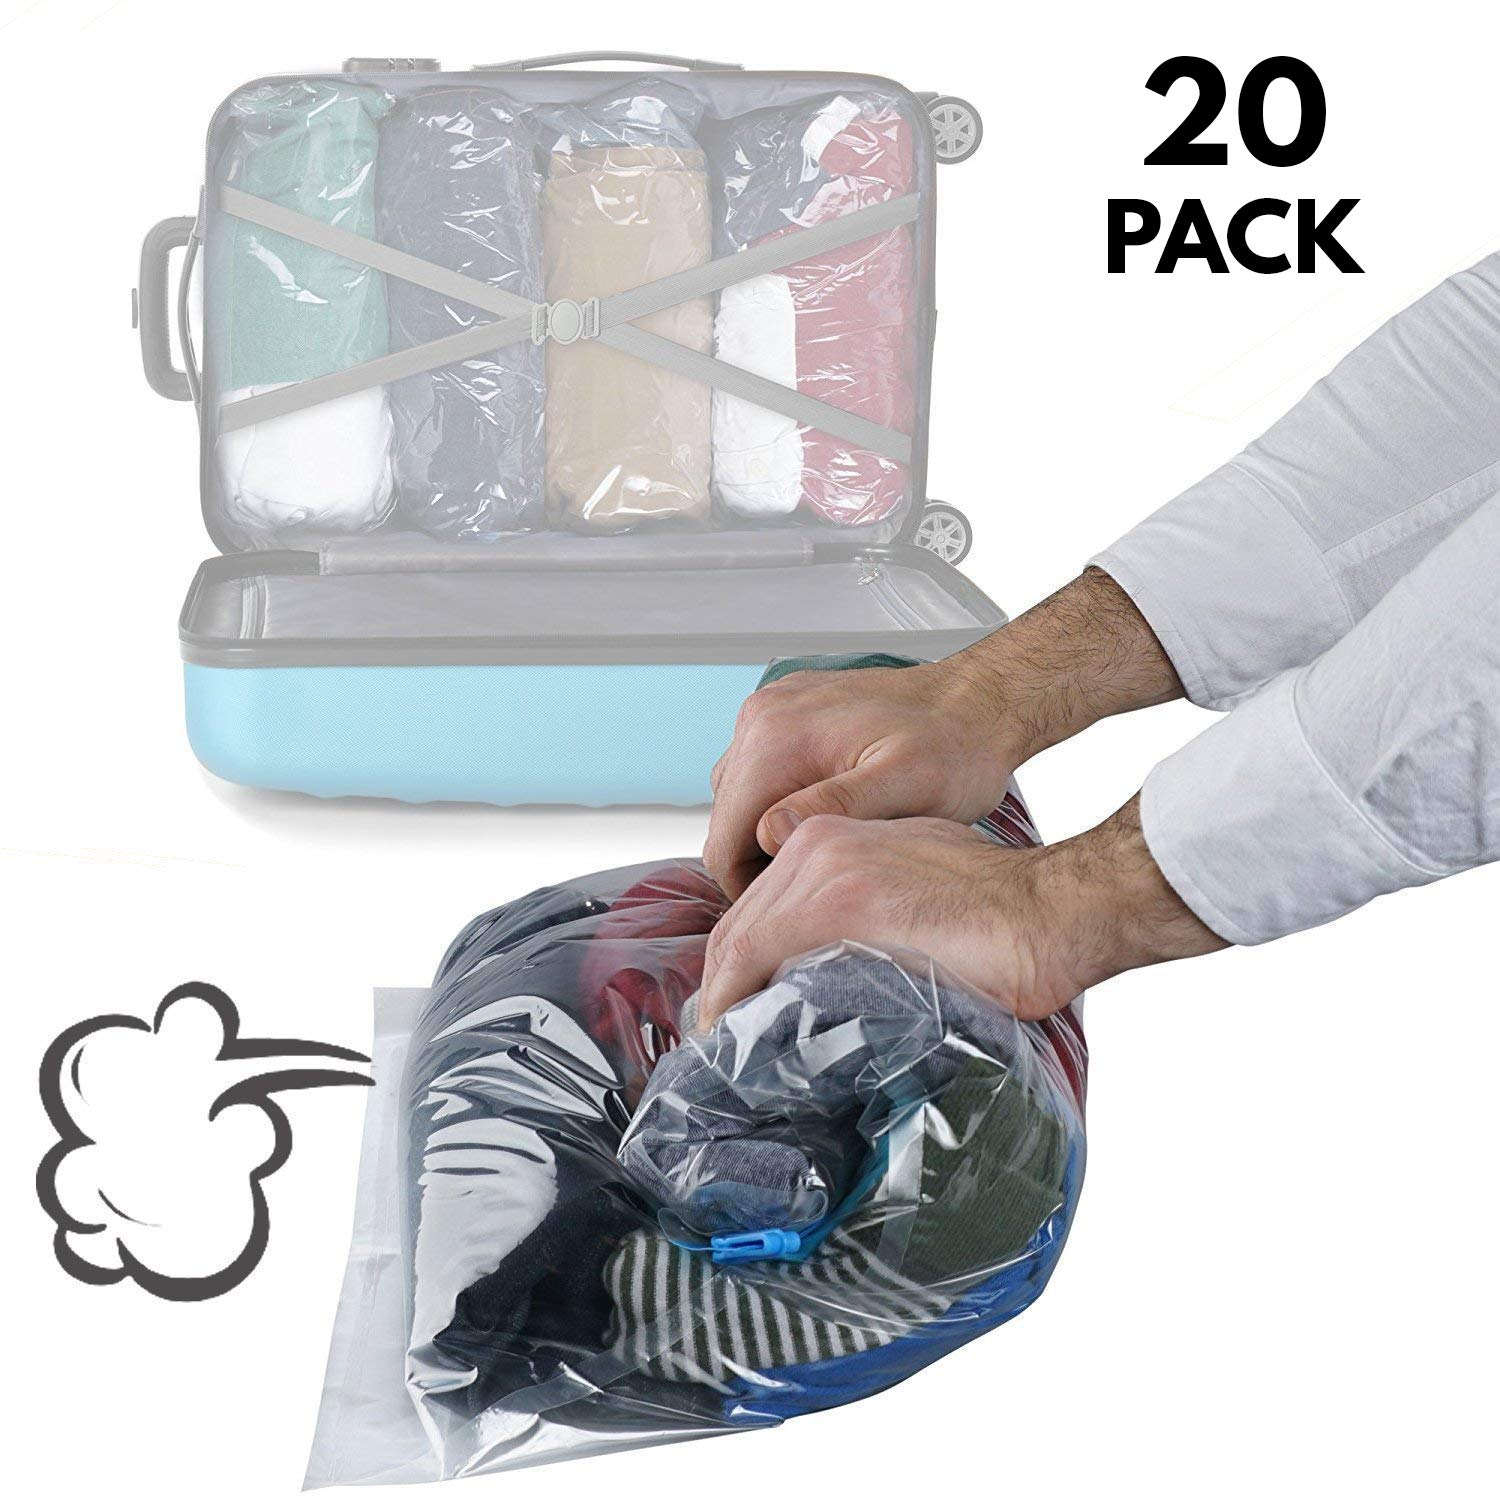 20 Pack Space Savers – Hand Rolled Double Zipper Vacuum Compression Packing and Storage Bags – Perfect Waterproof Space Saving Solution for Travel (No Pump Needed!)